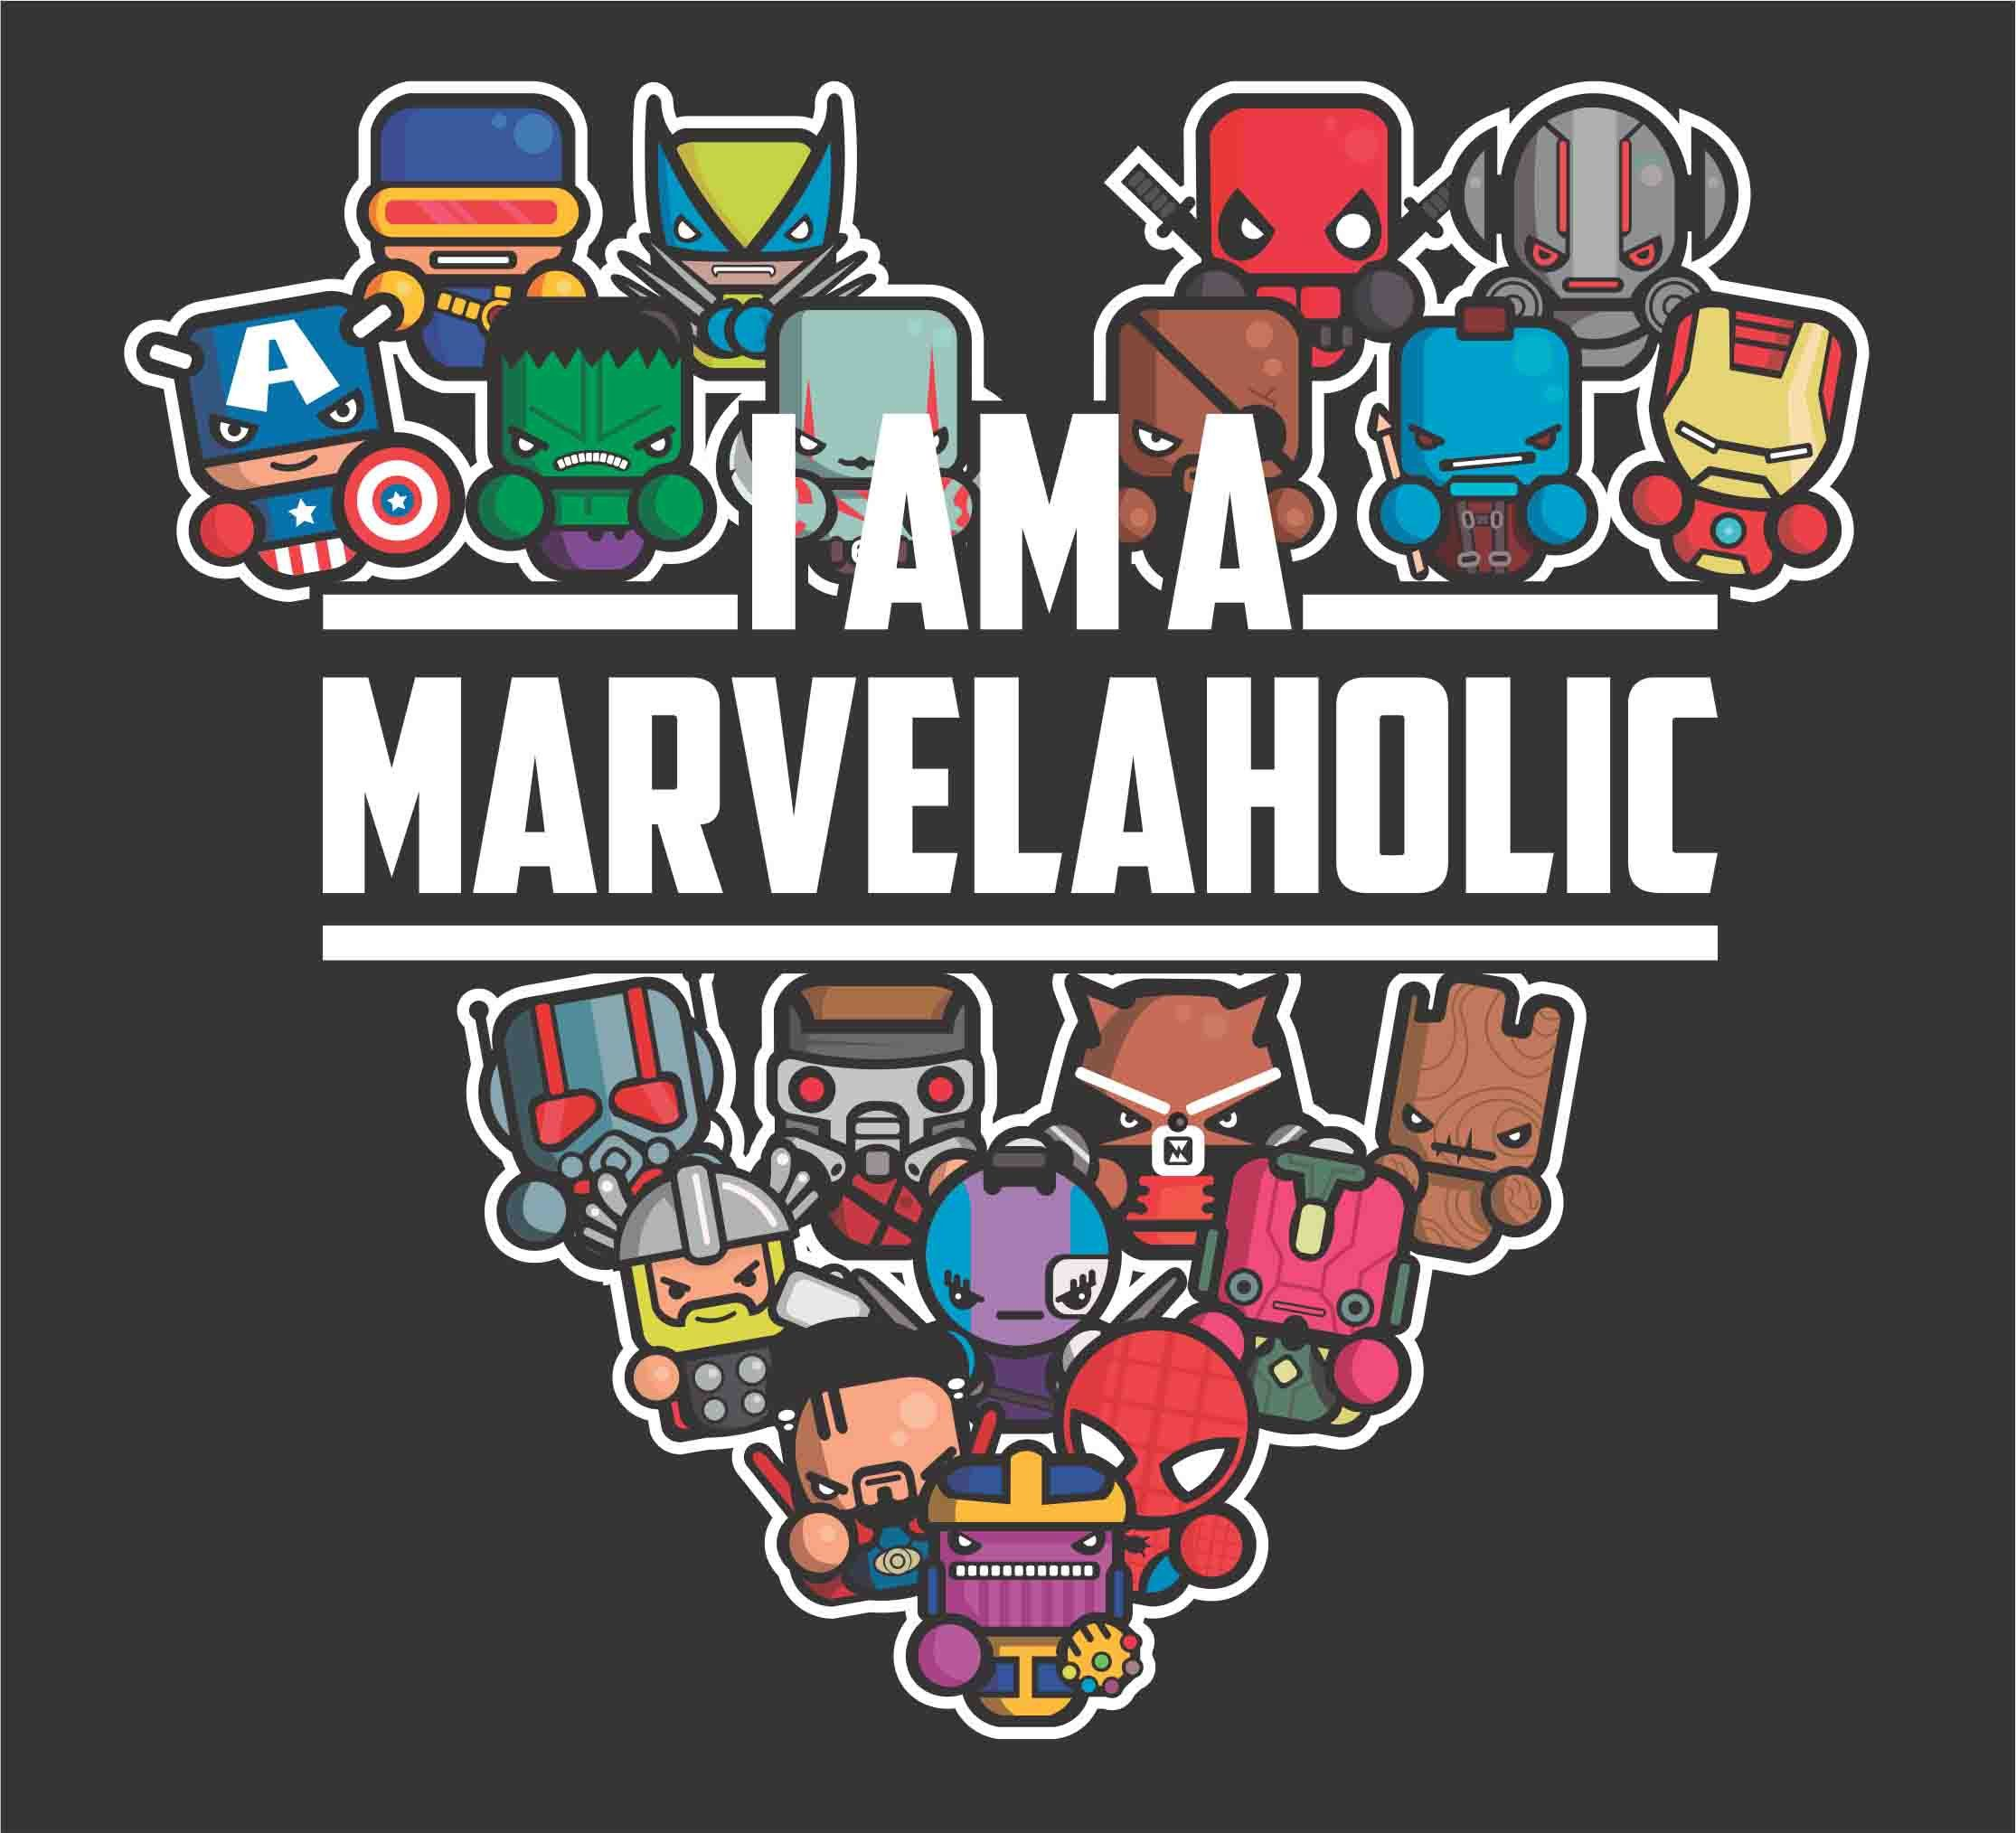 I Am A Marvelaholic Svg Avengers Endgame Clipart Cricut